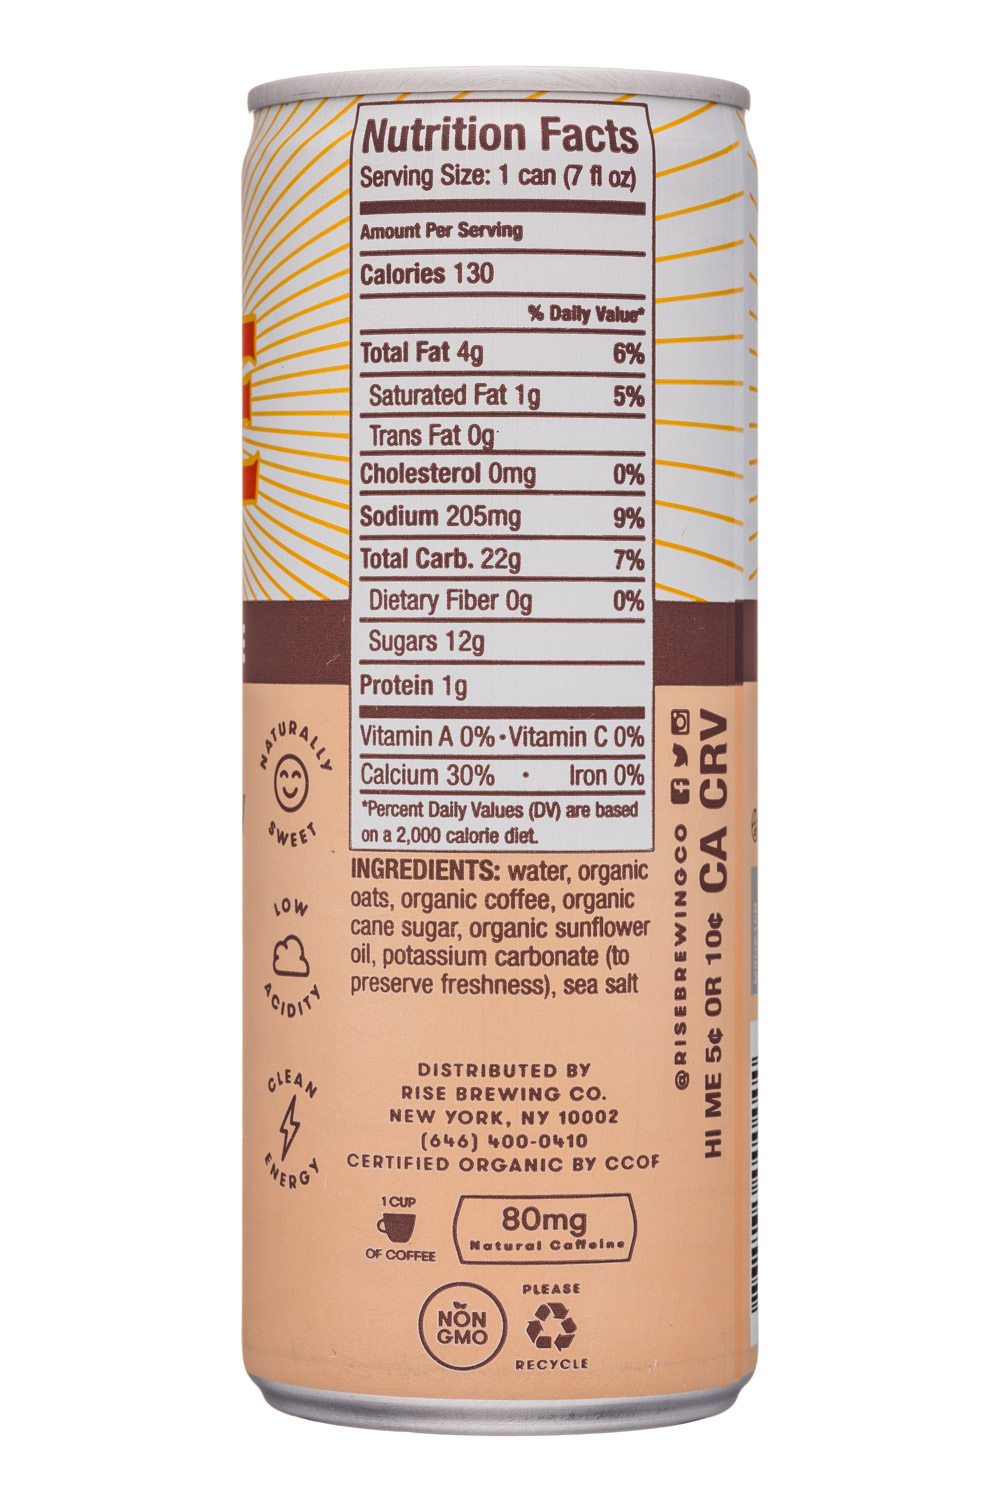 Rise Brewing Co.: Rise-7oz-NitroLatte-OatMilk-Facts